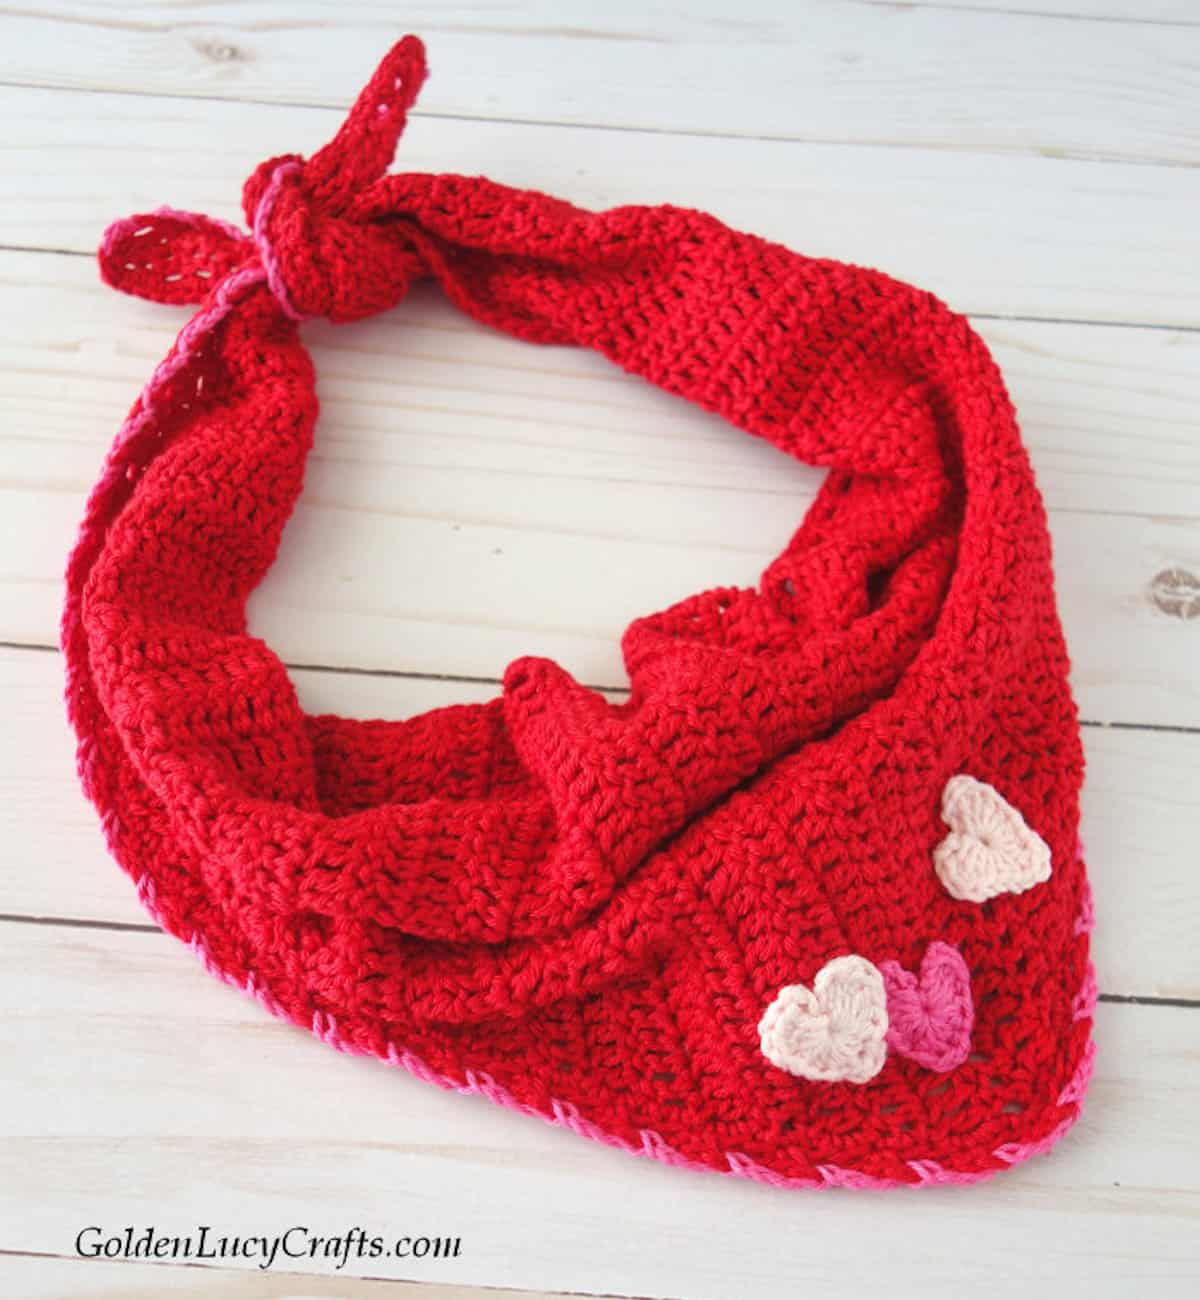 Red bandana embellished with three hearts.